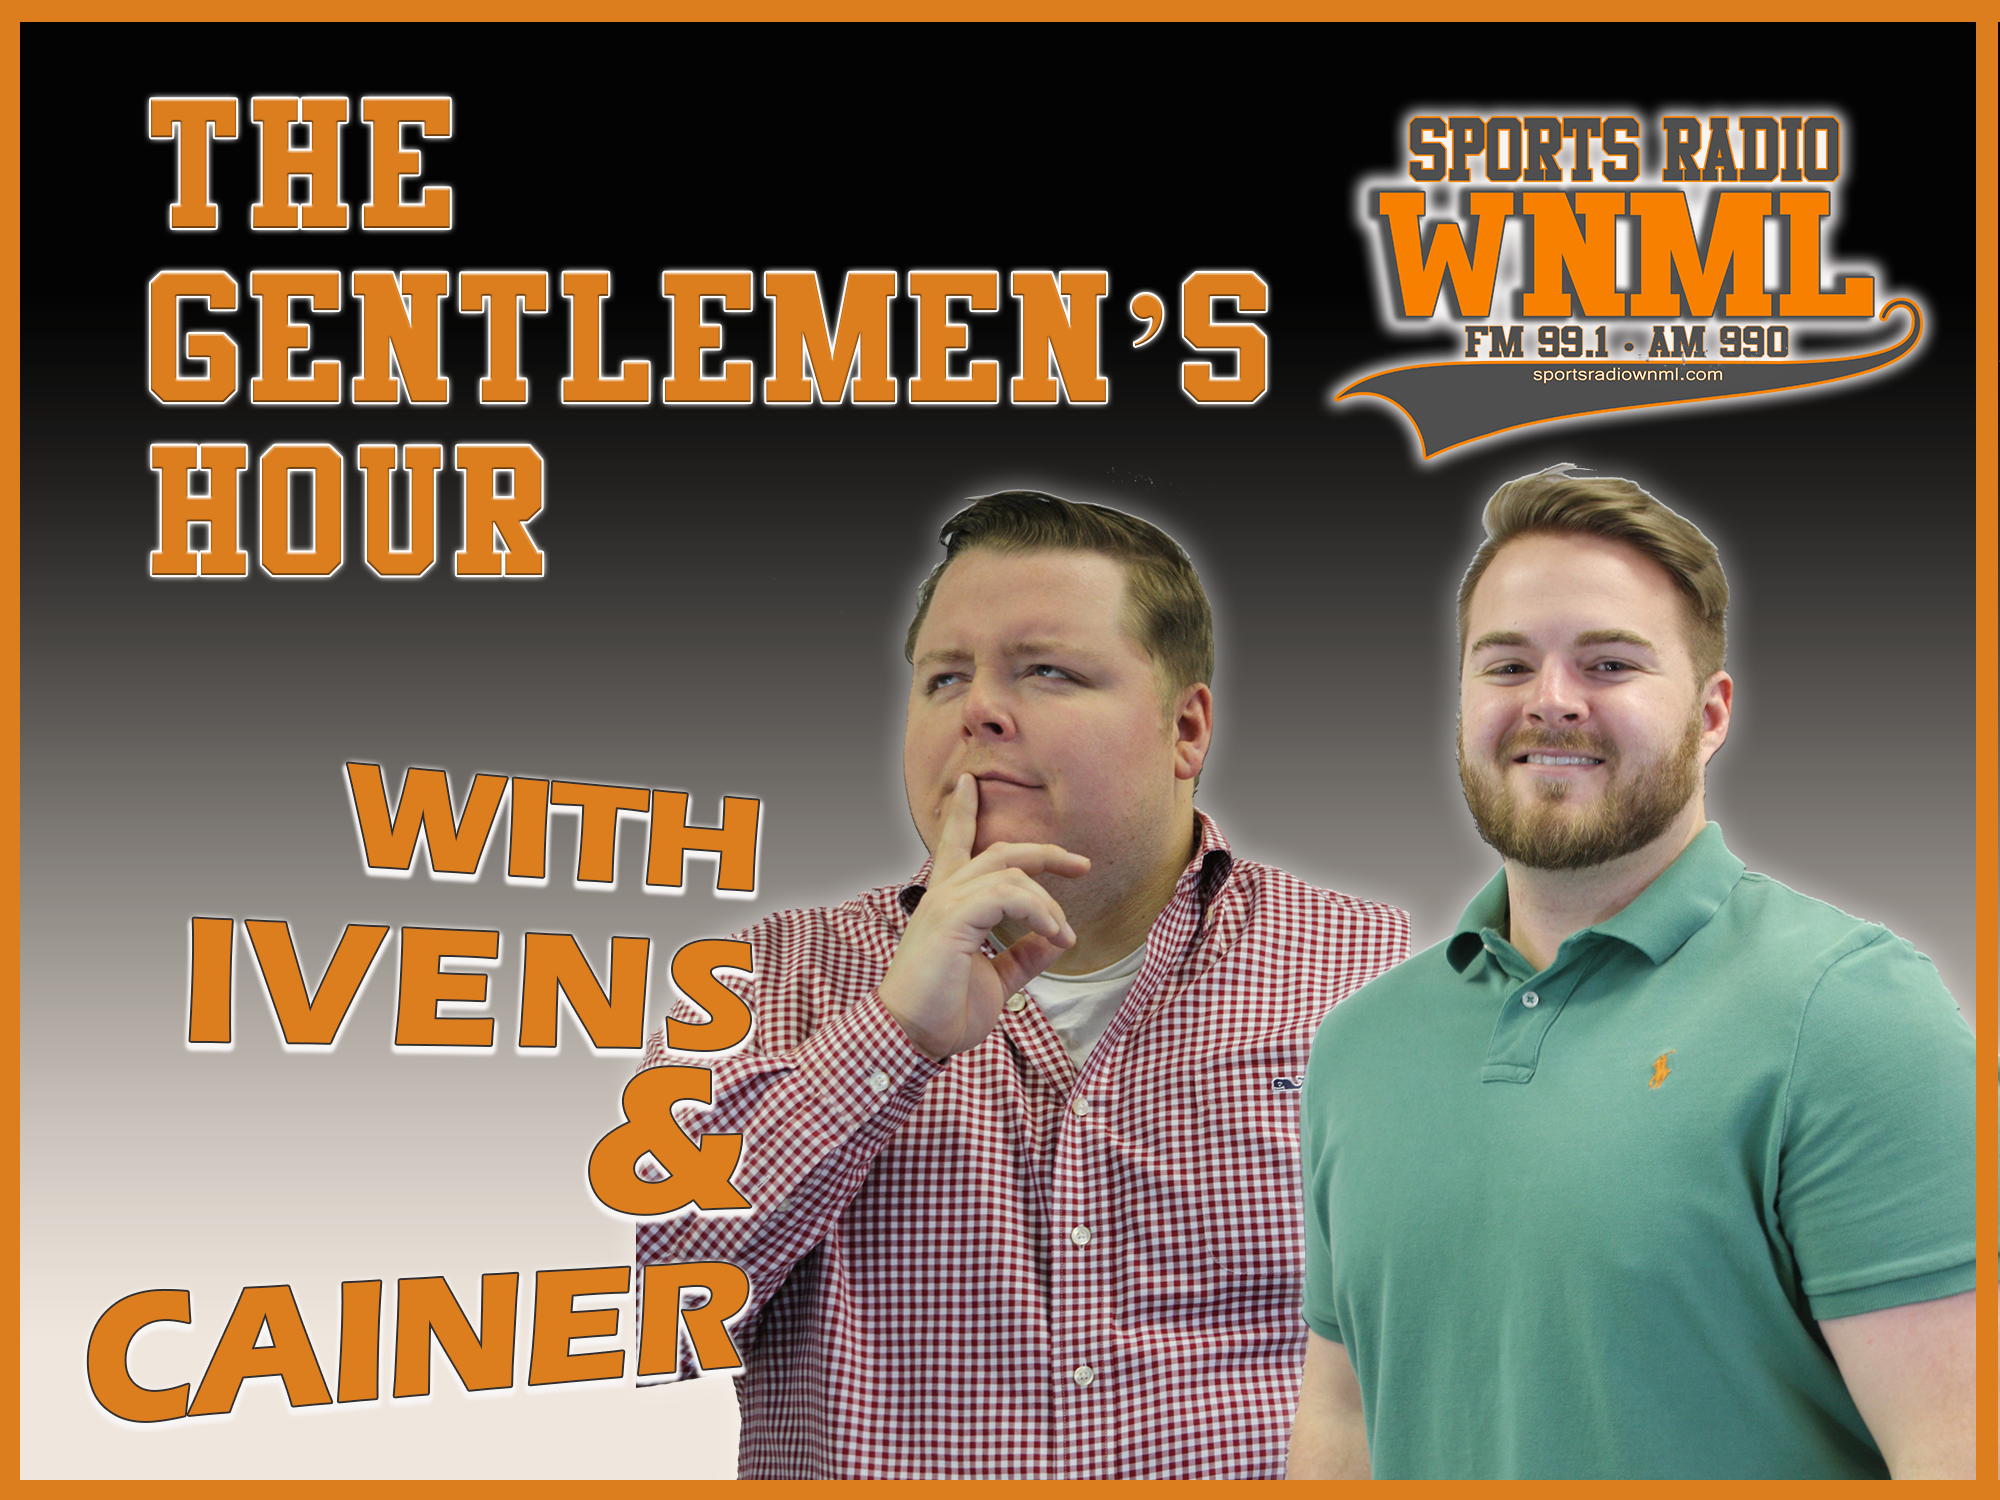 The Gentlemen's Hour Podcast: Episode 21 (3.6.19)